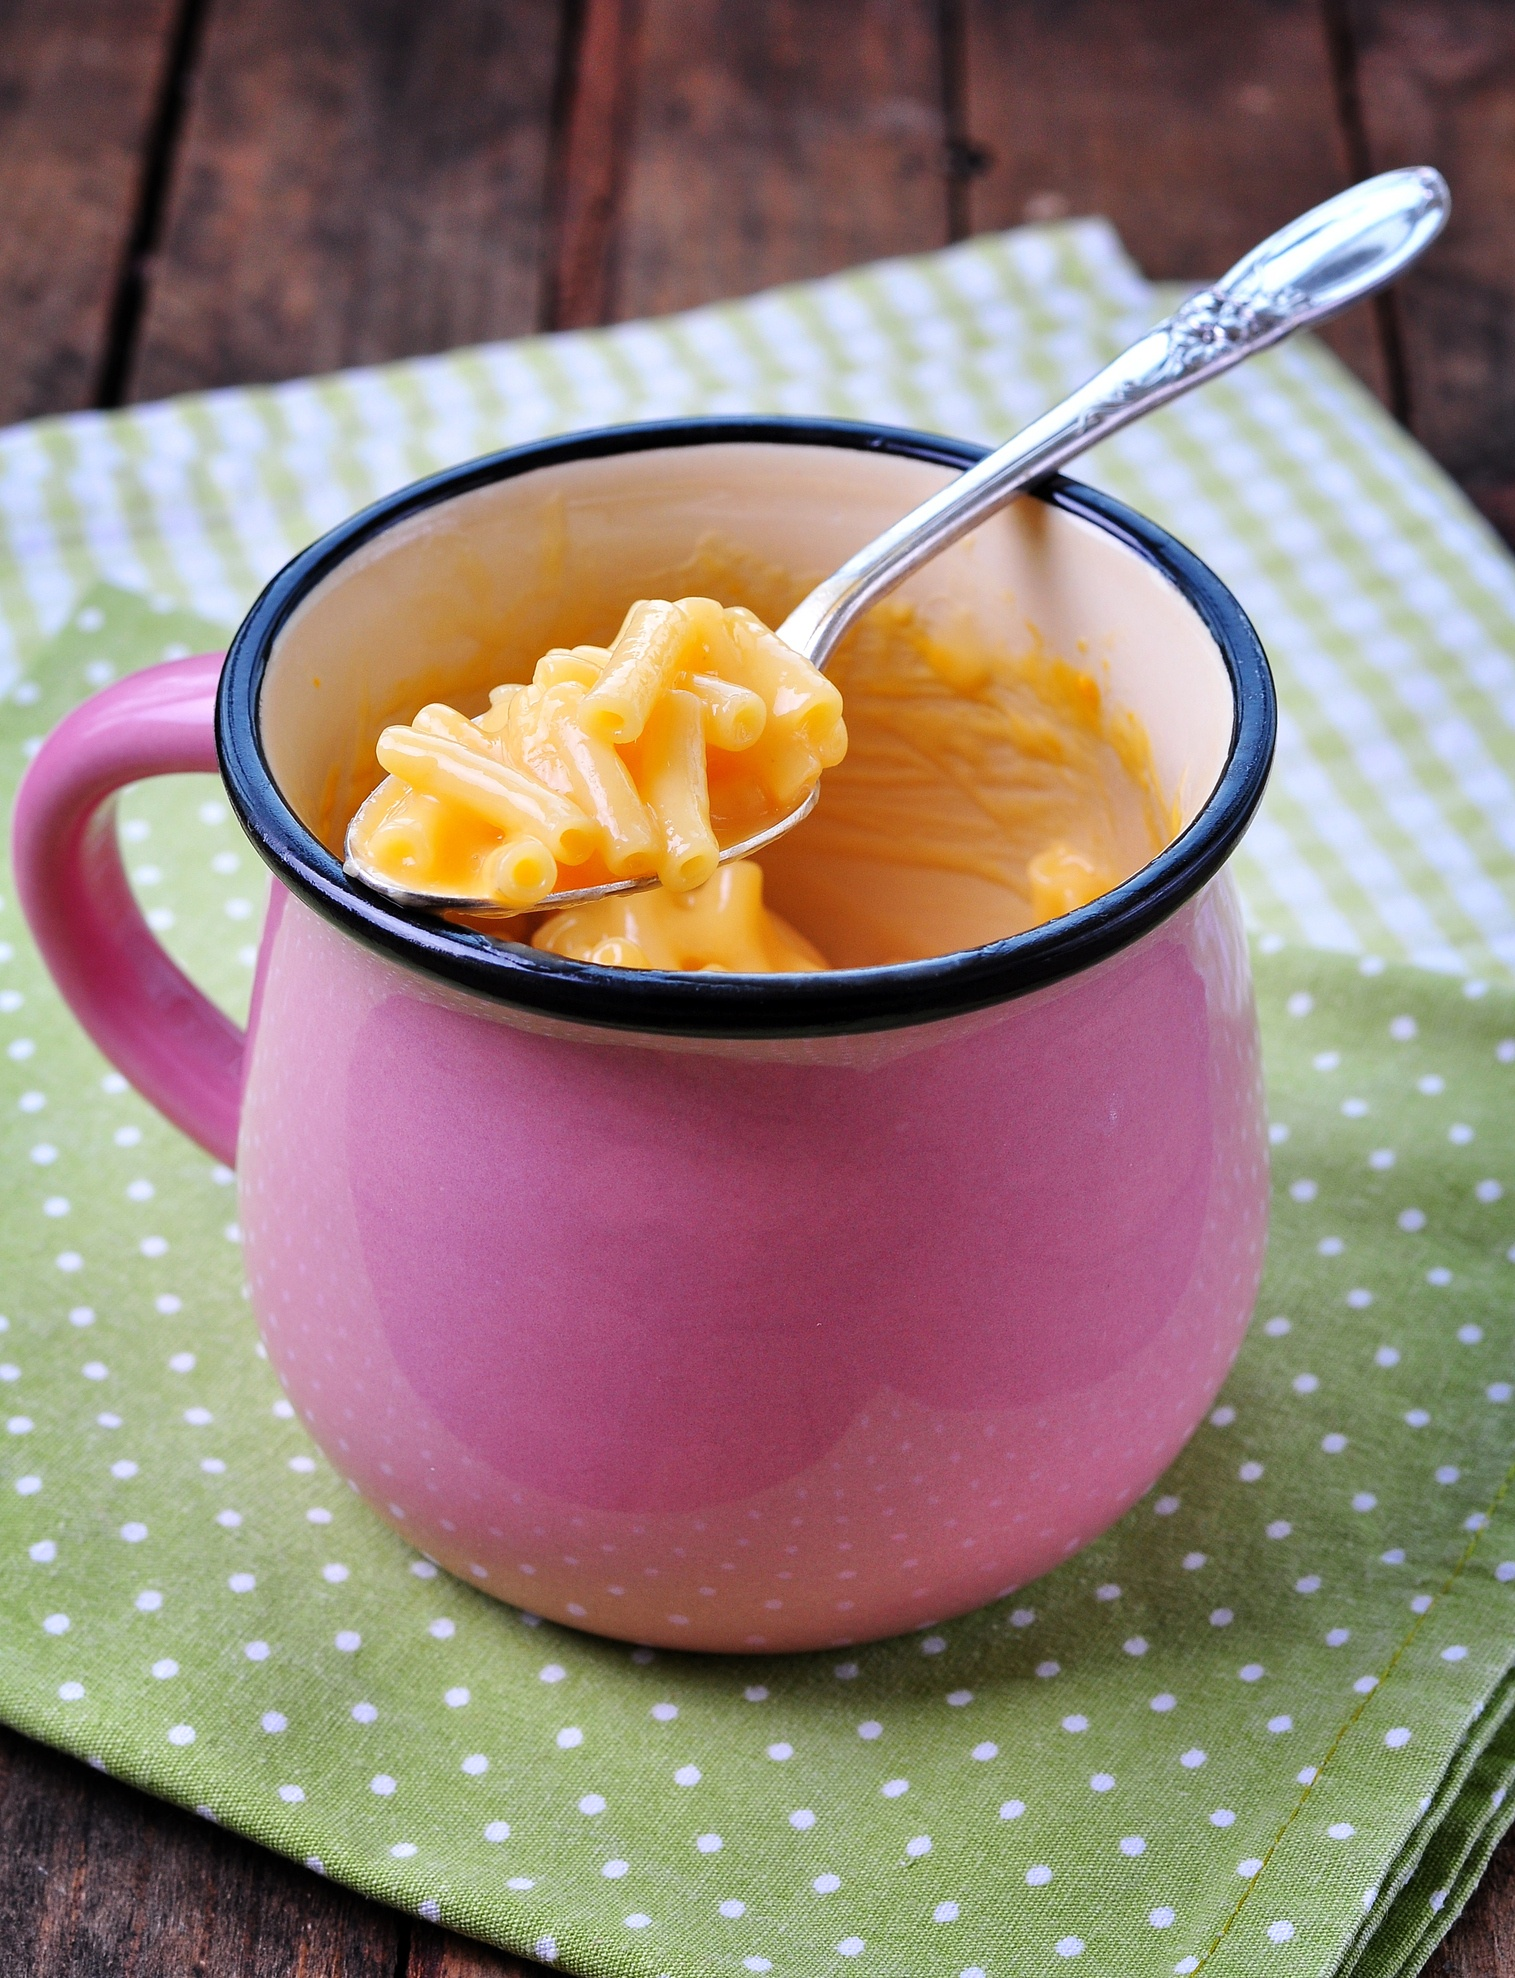 Delicious mug meals. Mac & cheese cooked in the microwave.